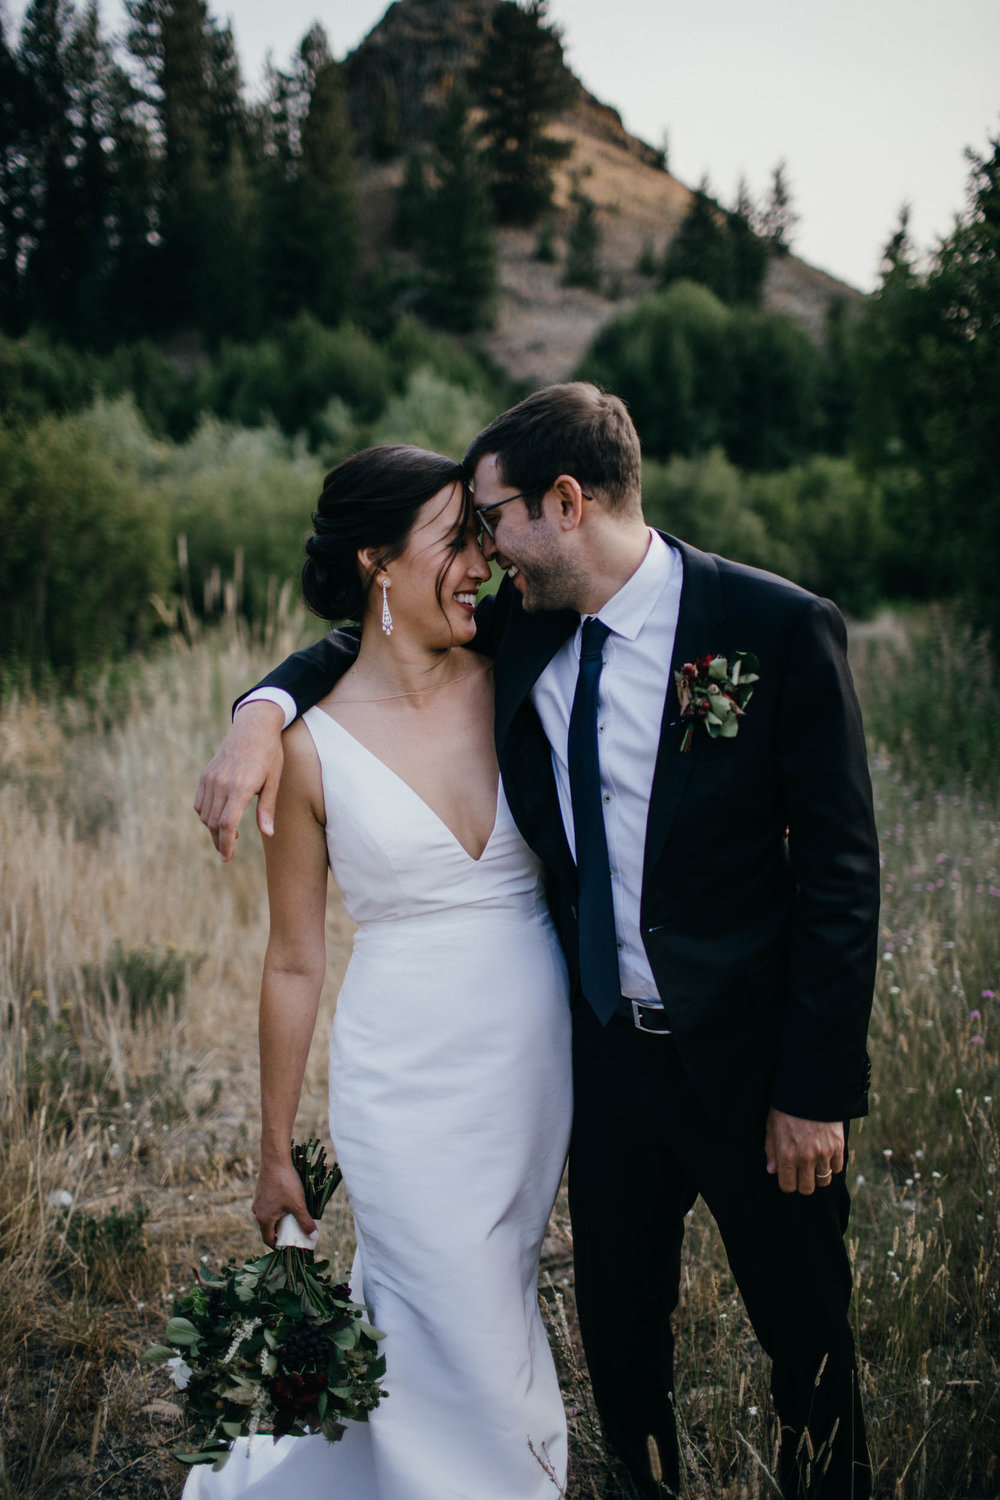 Kat & Sam | Trail Creek Wedding